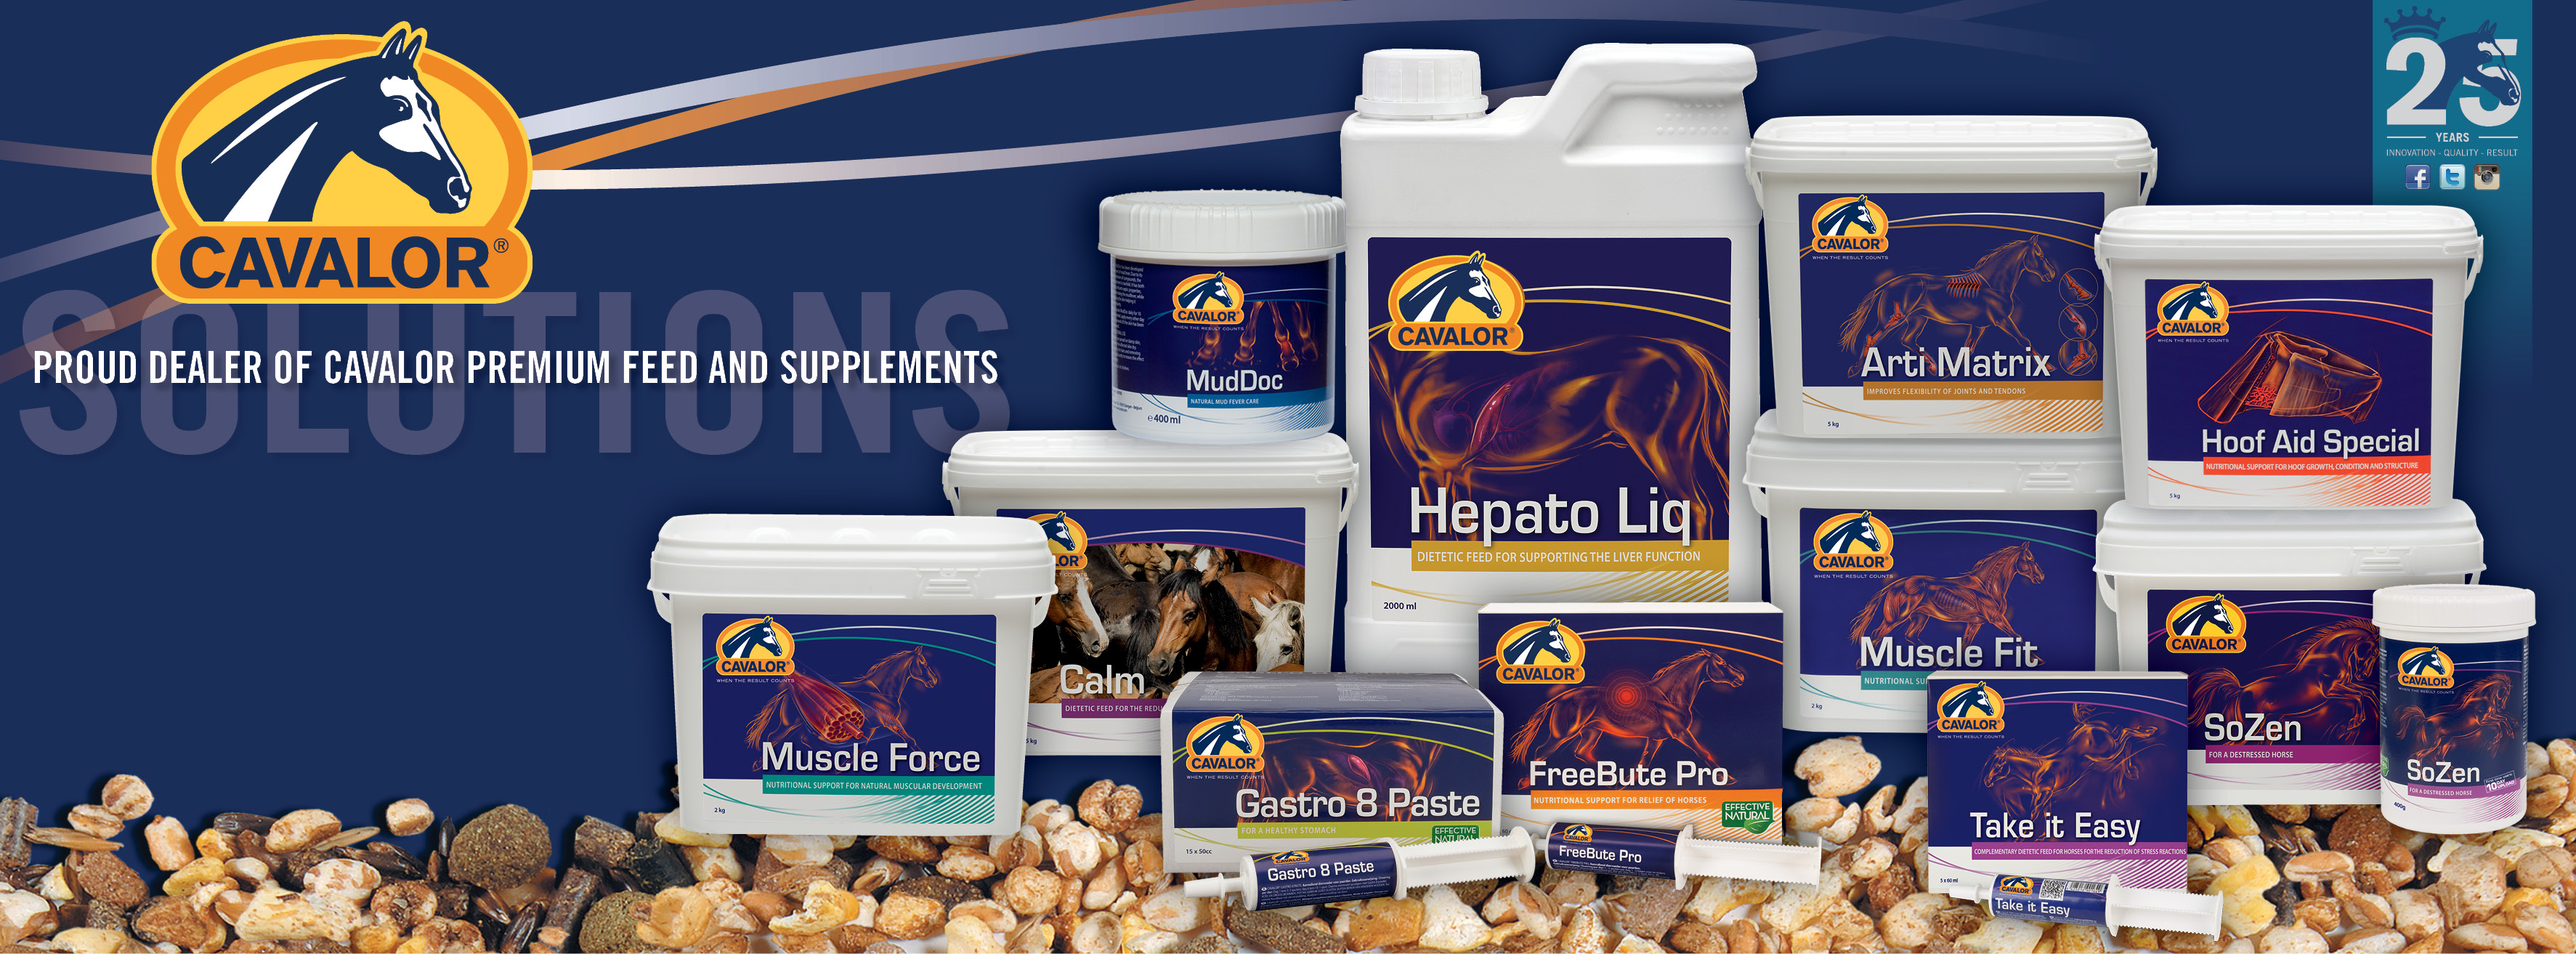 Horsemarket Official Cavalor Feed And Supplements